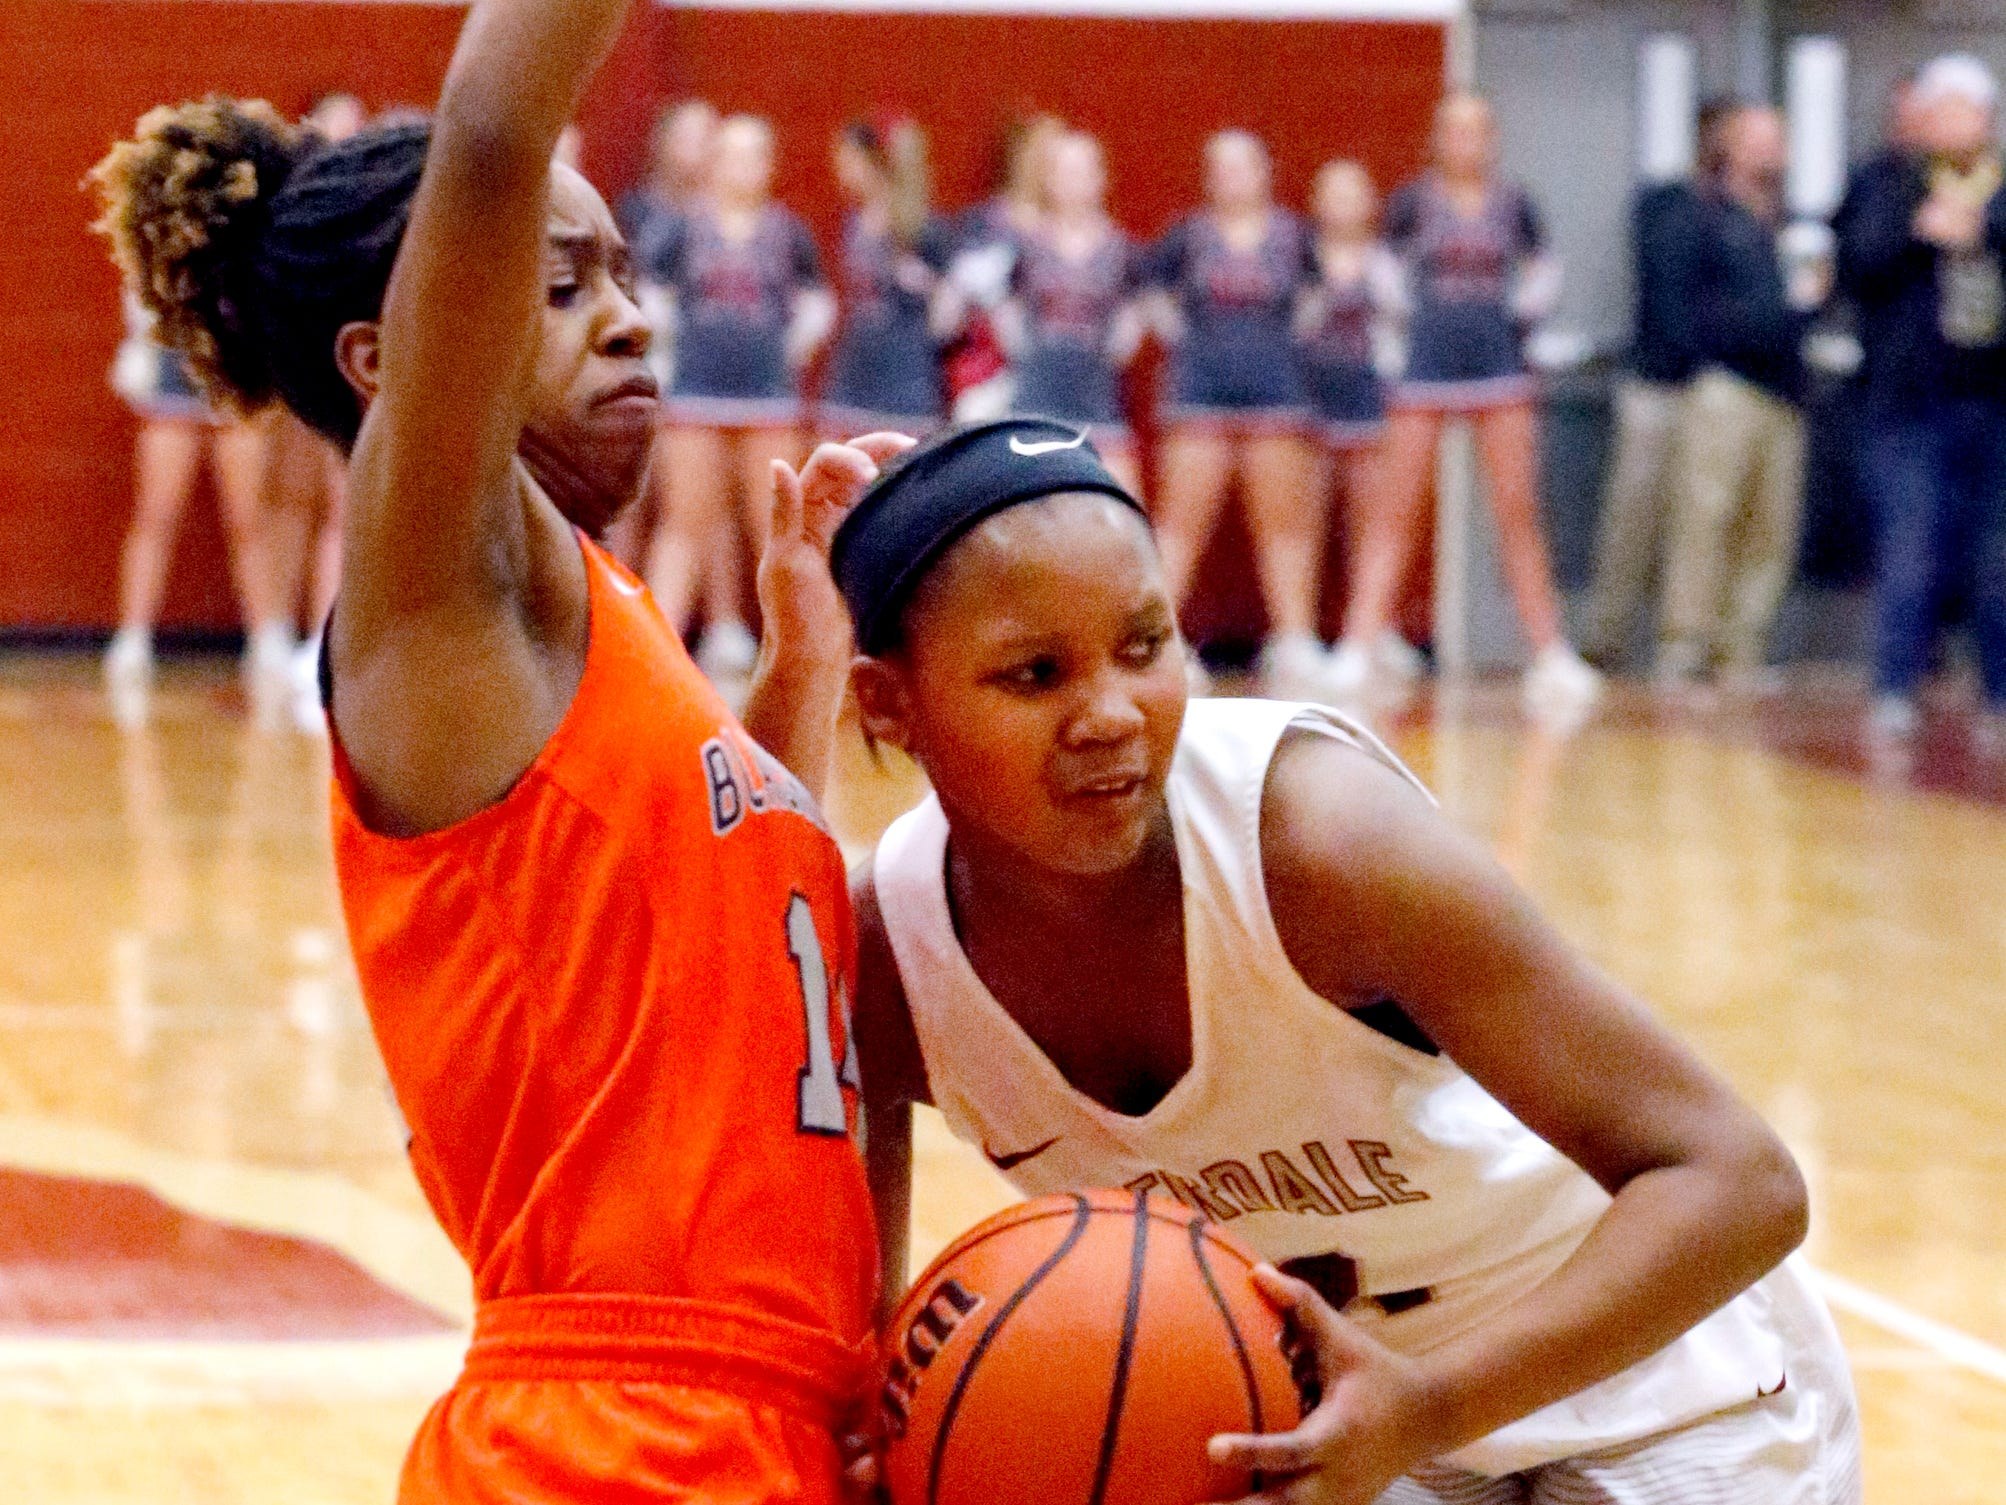 Riverdale's Acacia Hayes (3) looks to pass the ball as Blackman's Joelle Patton (14) guards her on Tuesday Jan. 8, 2019.